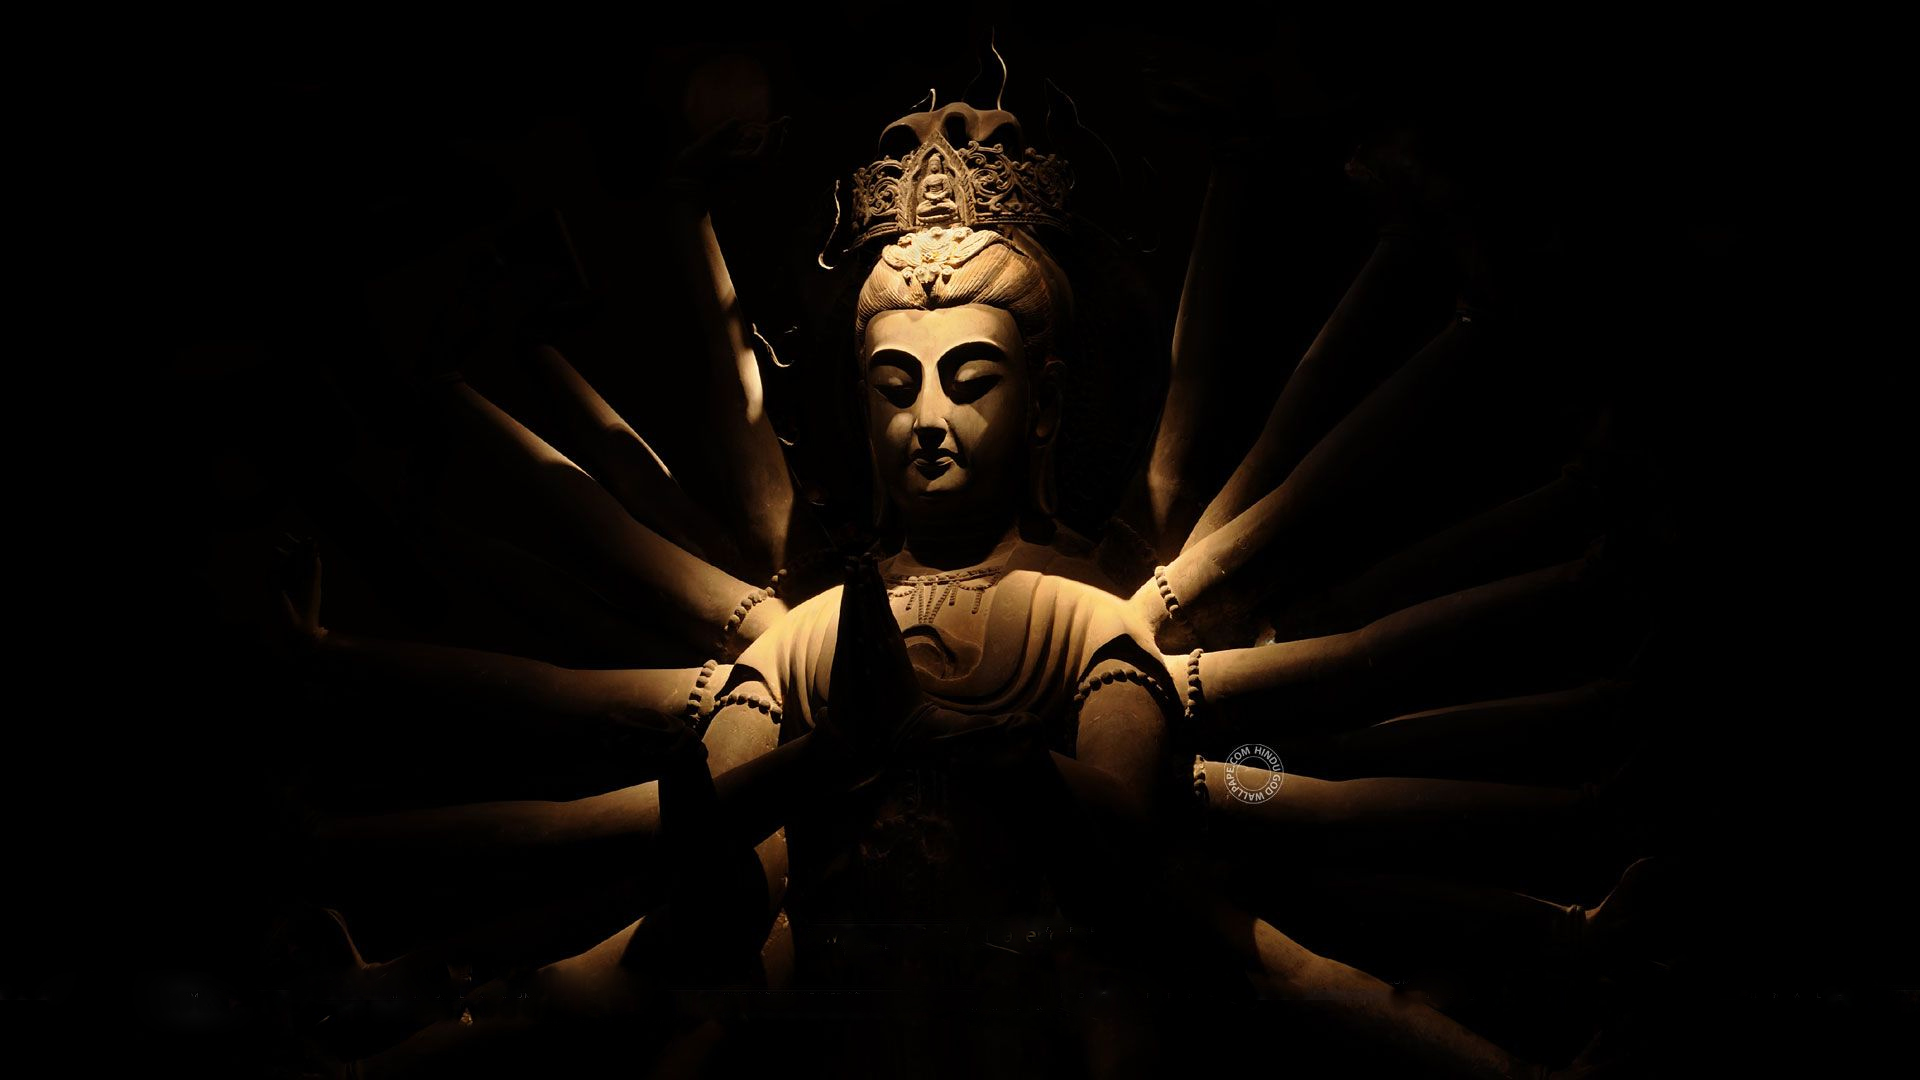 Gautam Buddha Images In Black And White